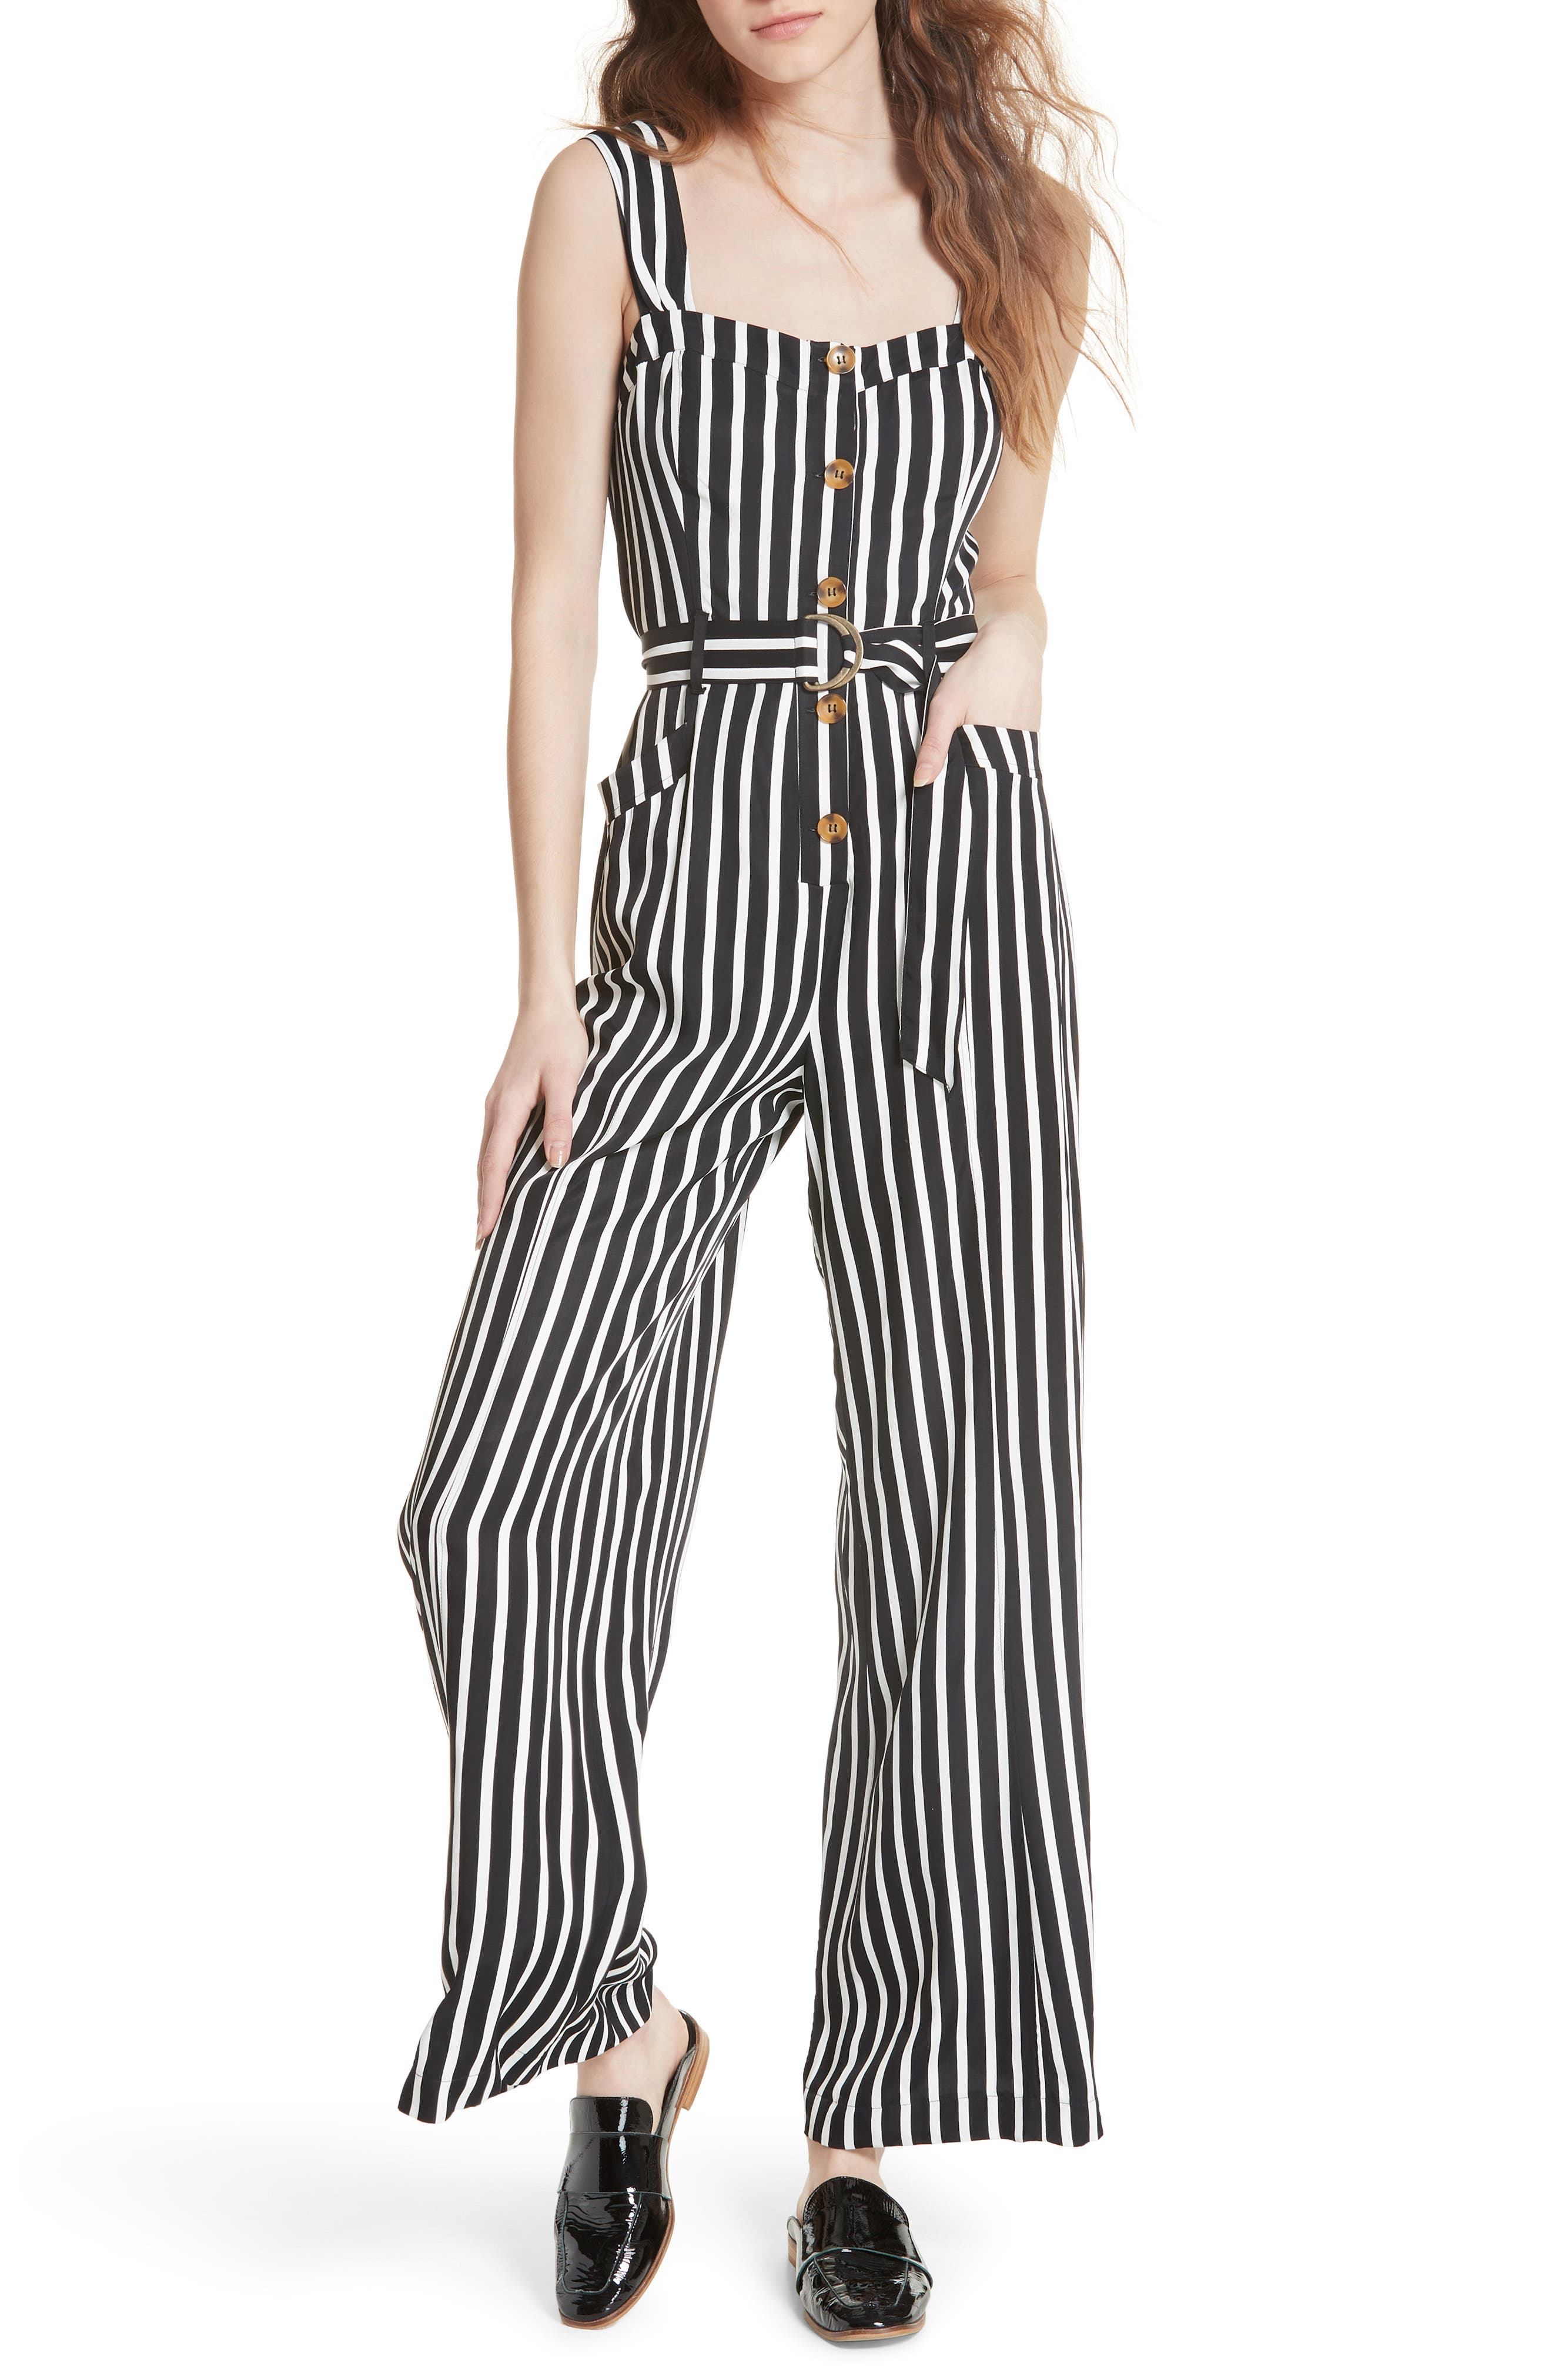 City Girl Jumpsuit,                             Main thumbnail 1, color,                             001